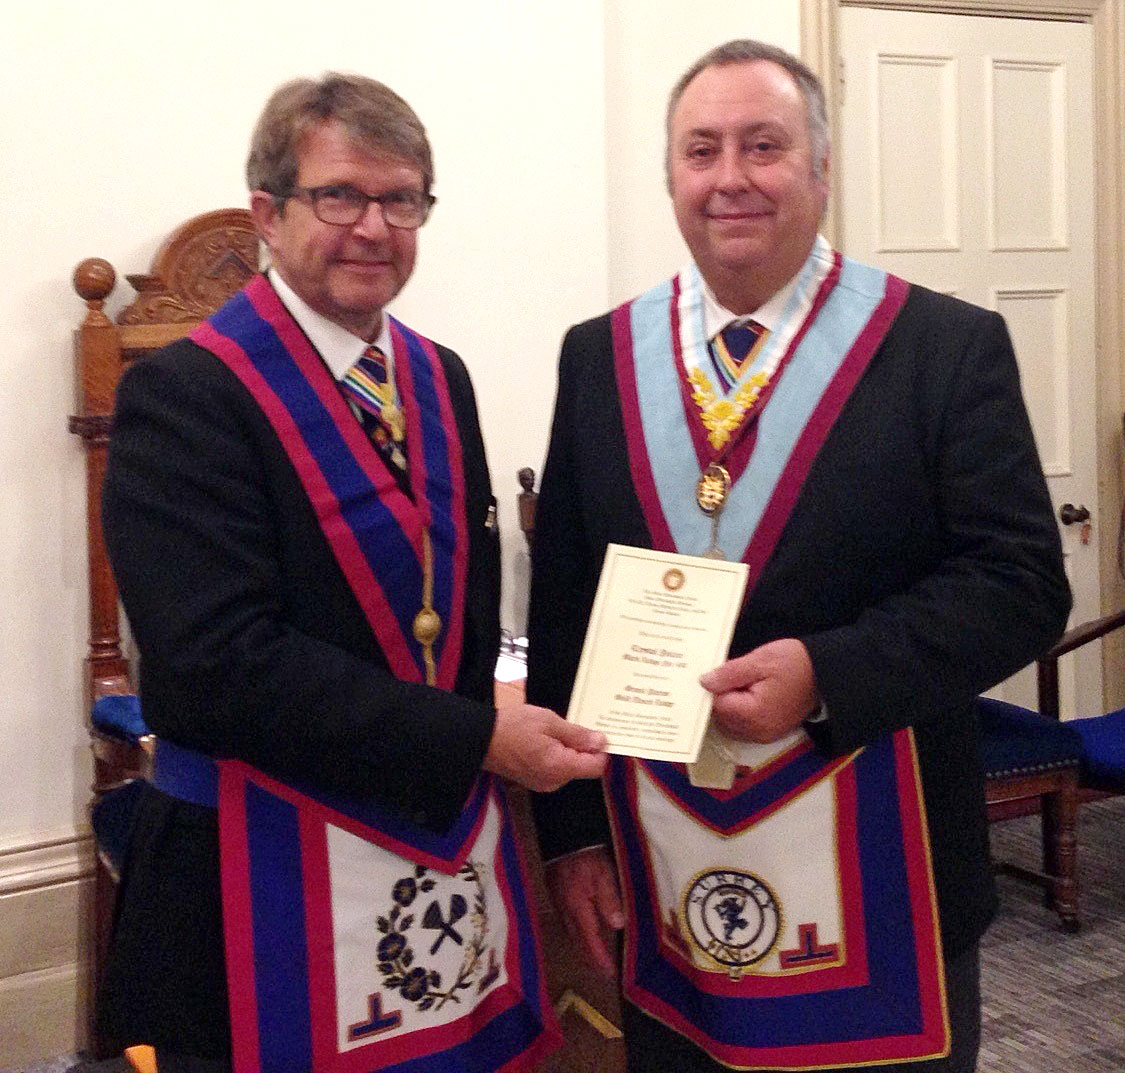 The Provincial Grand Master visits Dorking Lodge